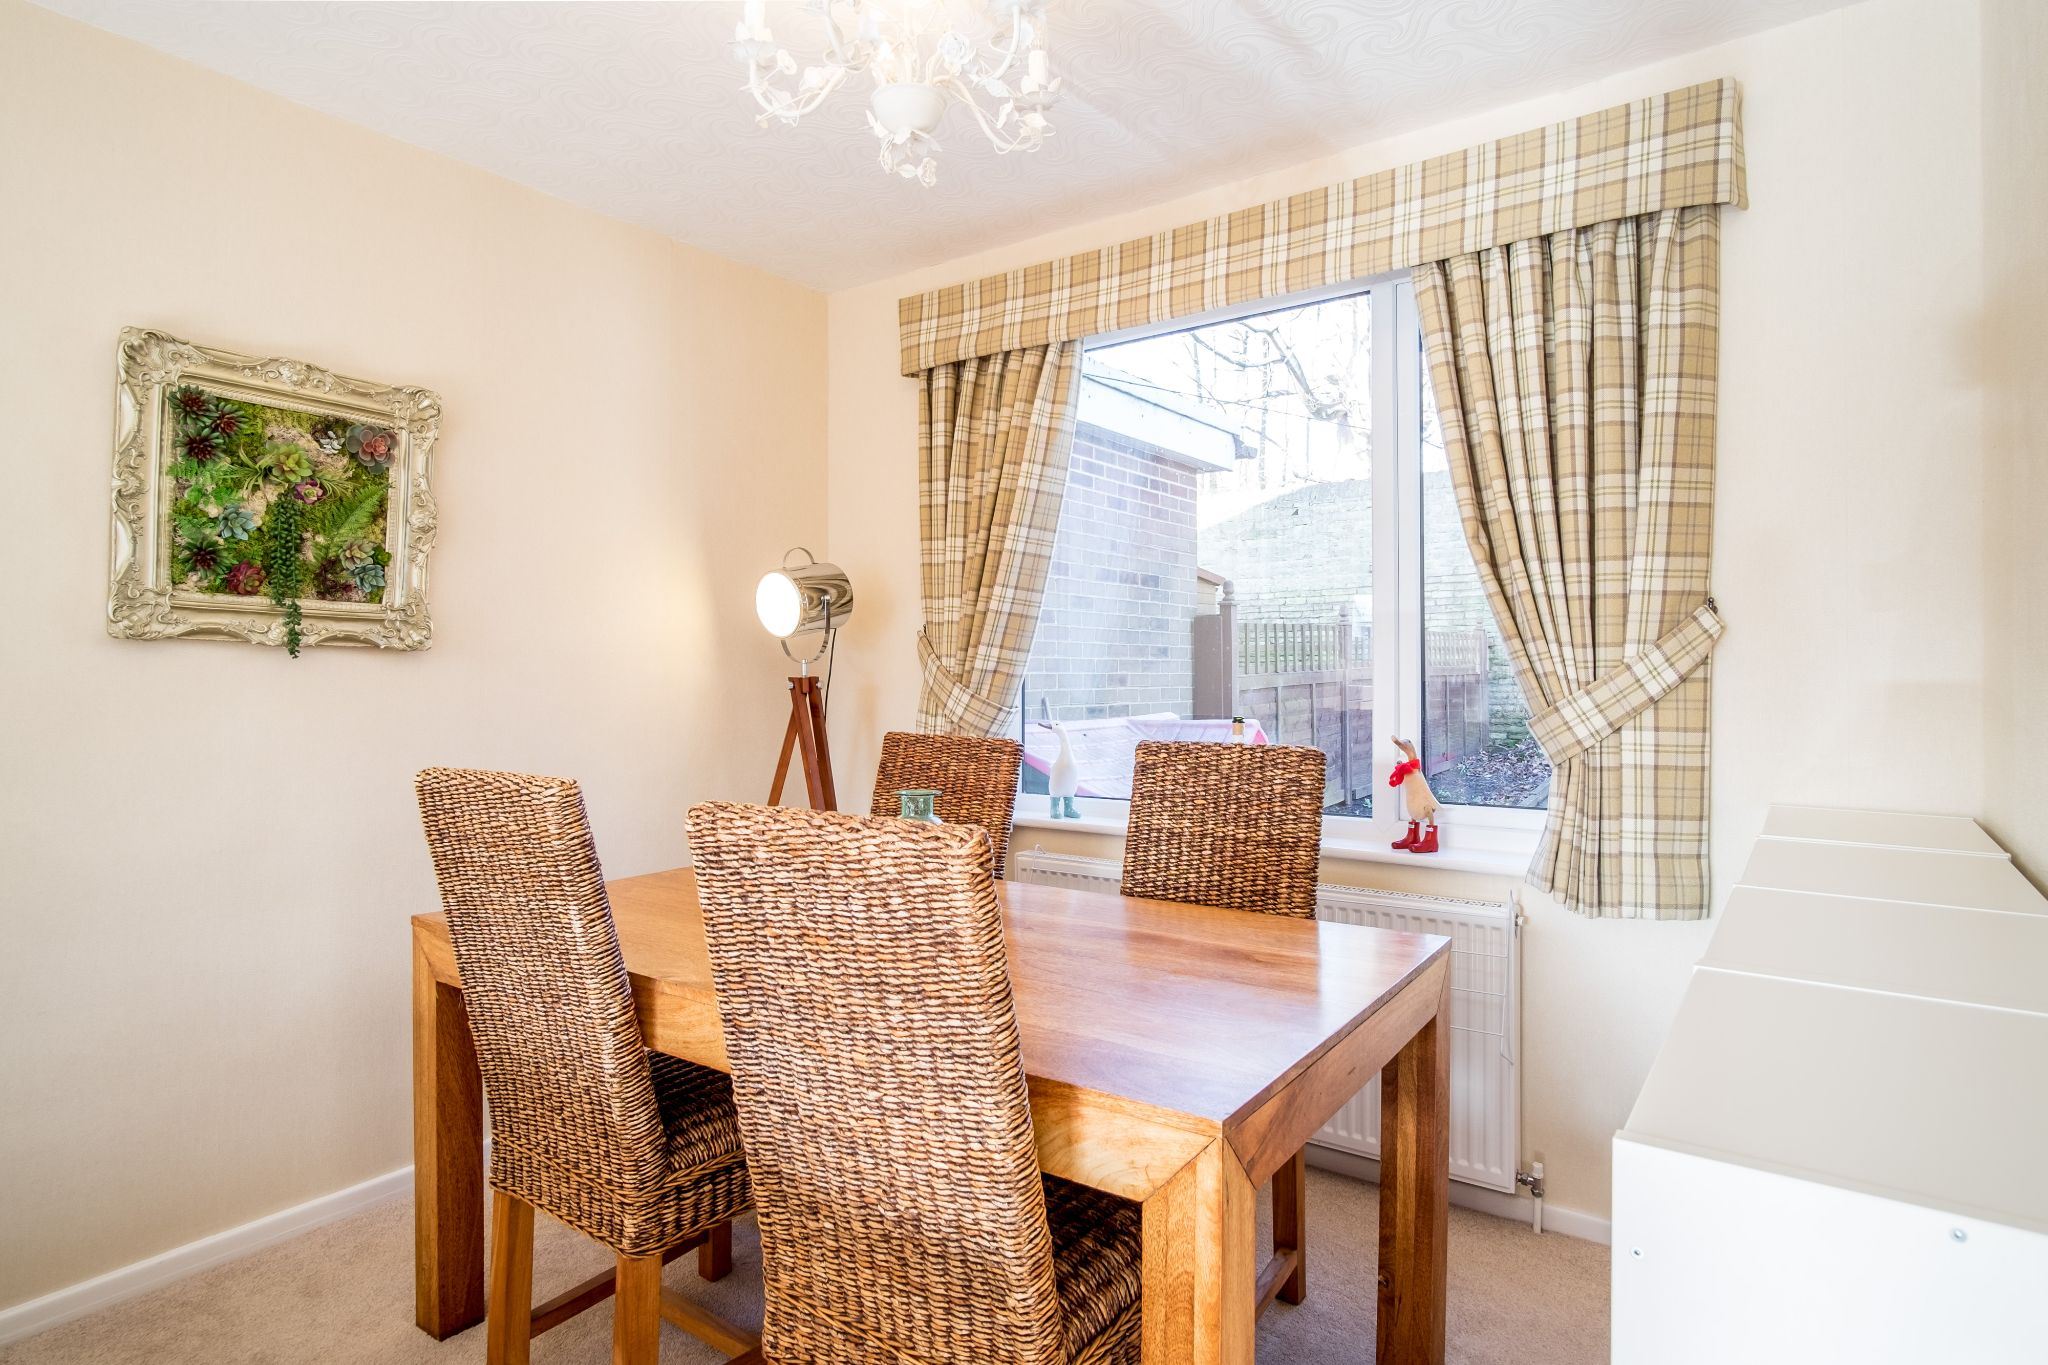 3 bedroom semi-detached house For Sale in Brighouse - Dinning area